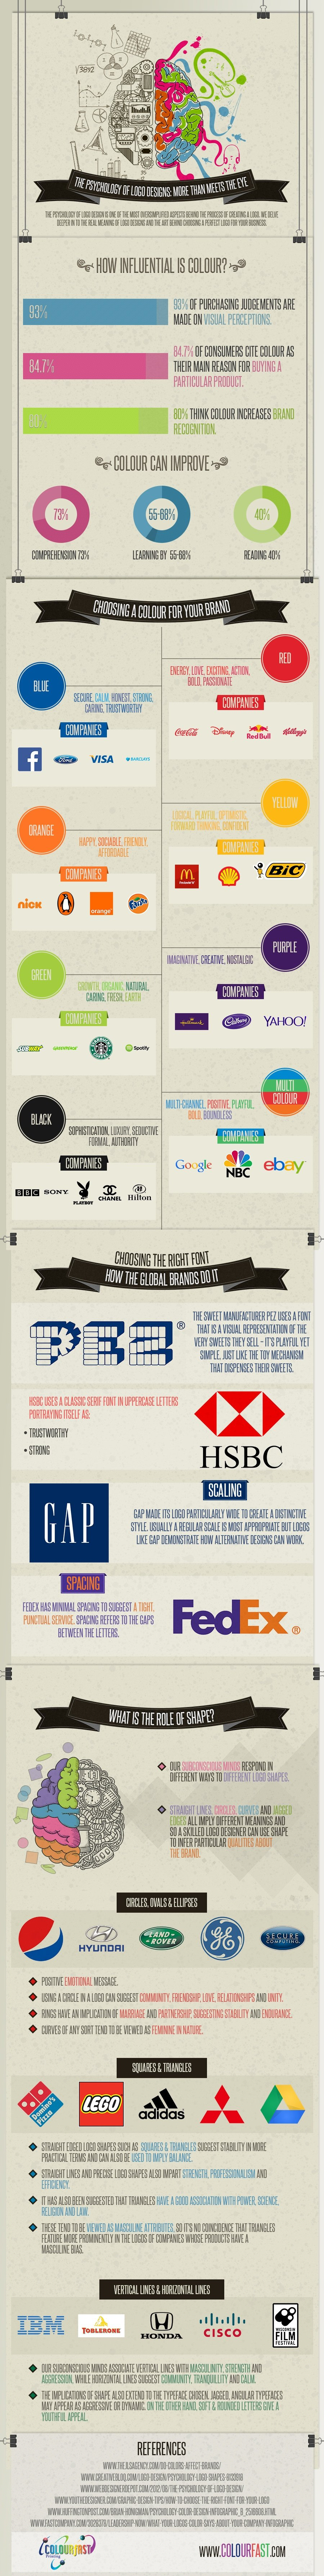 Colourfast - The Psychology Behind Logo Designs